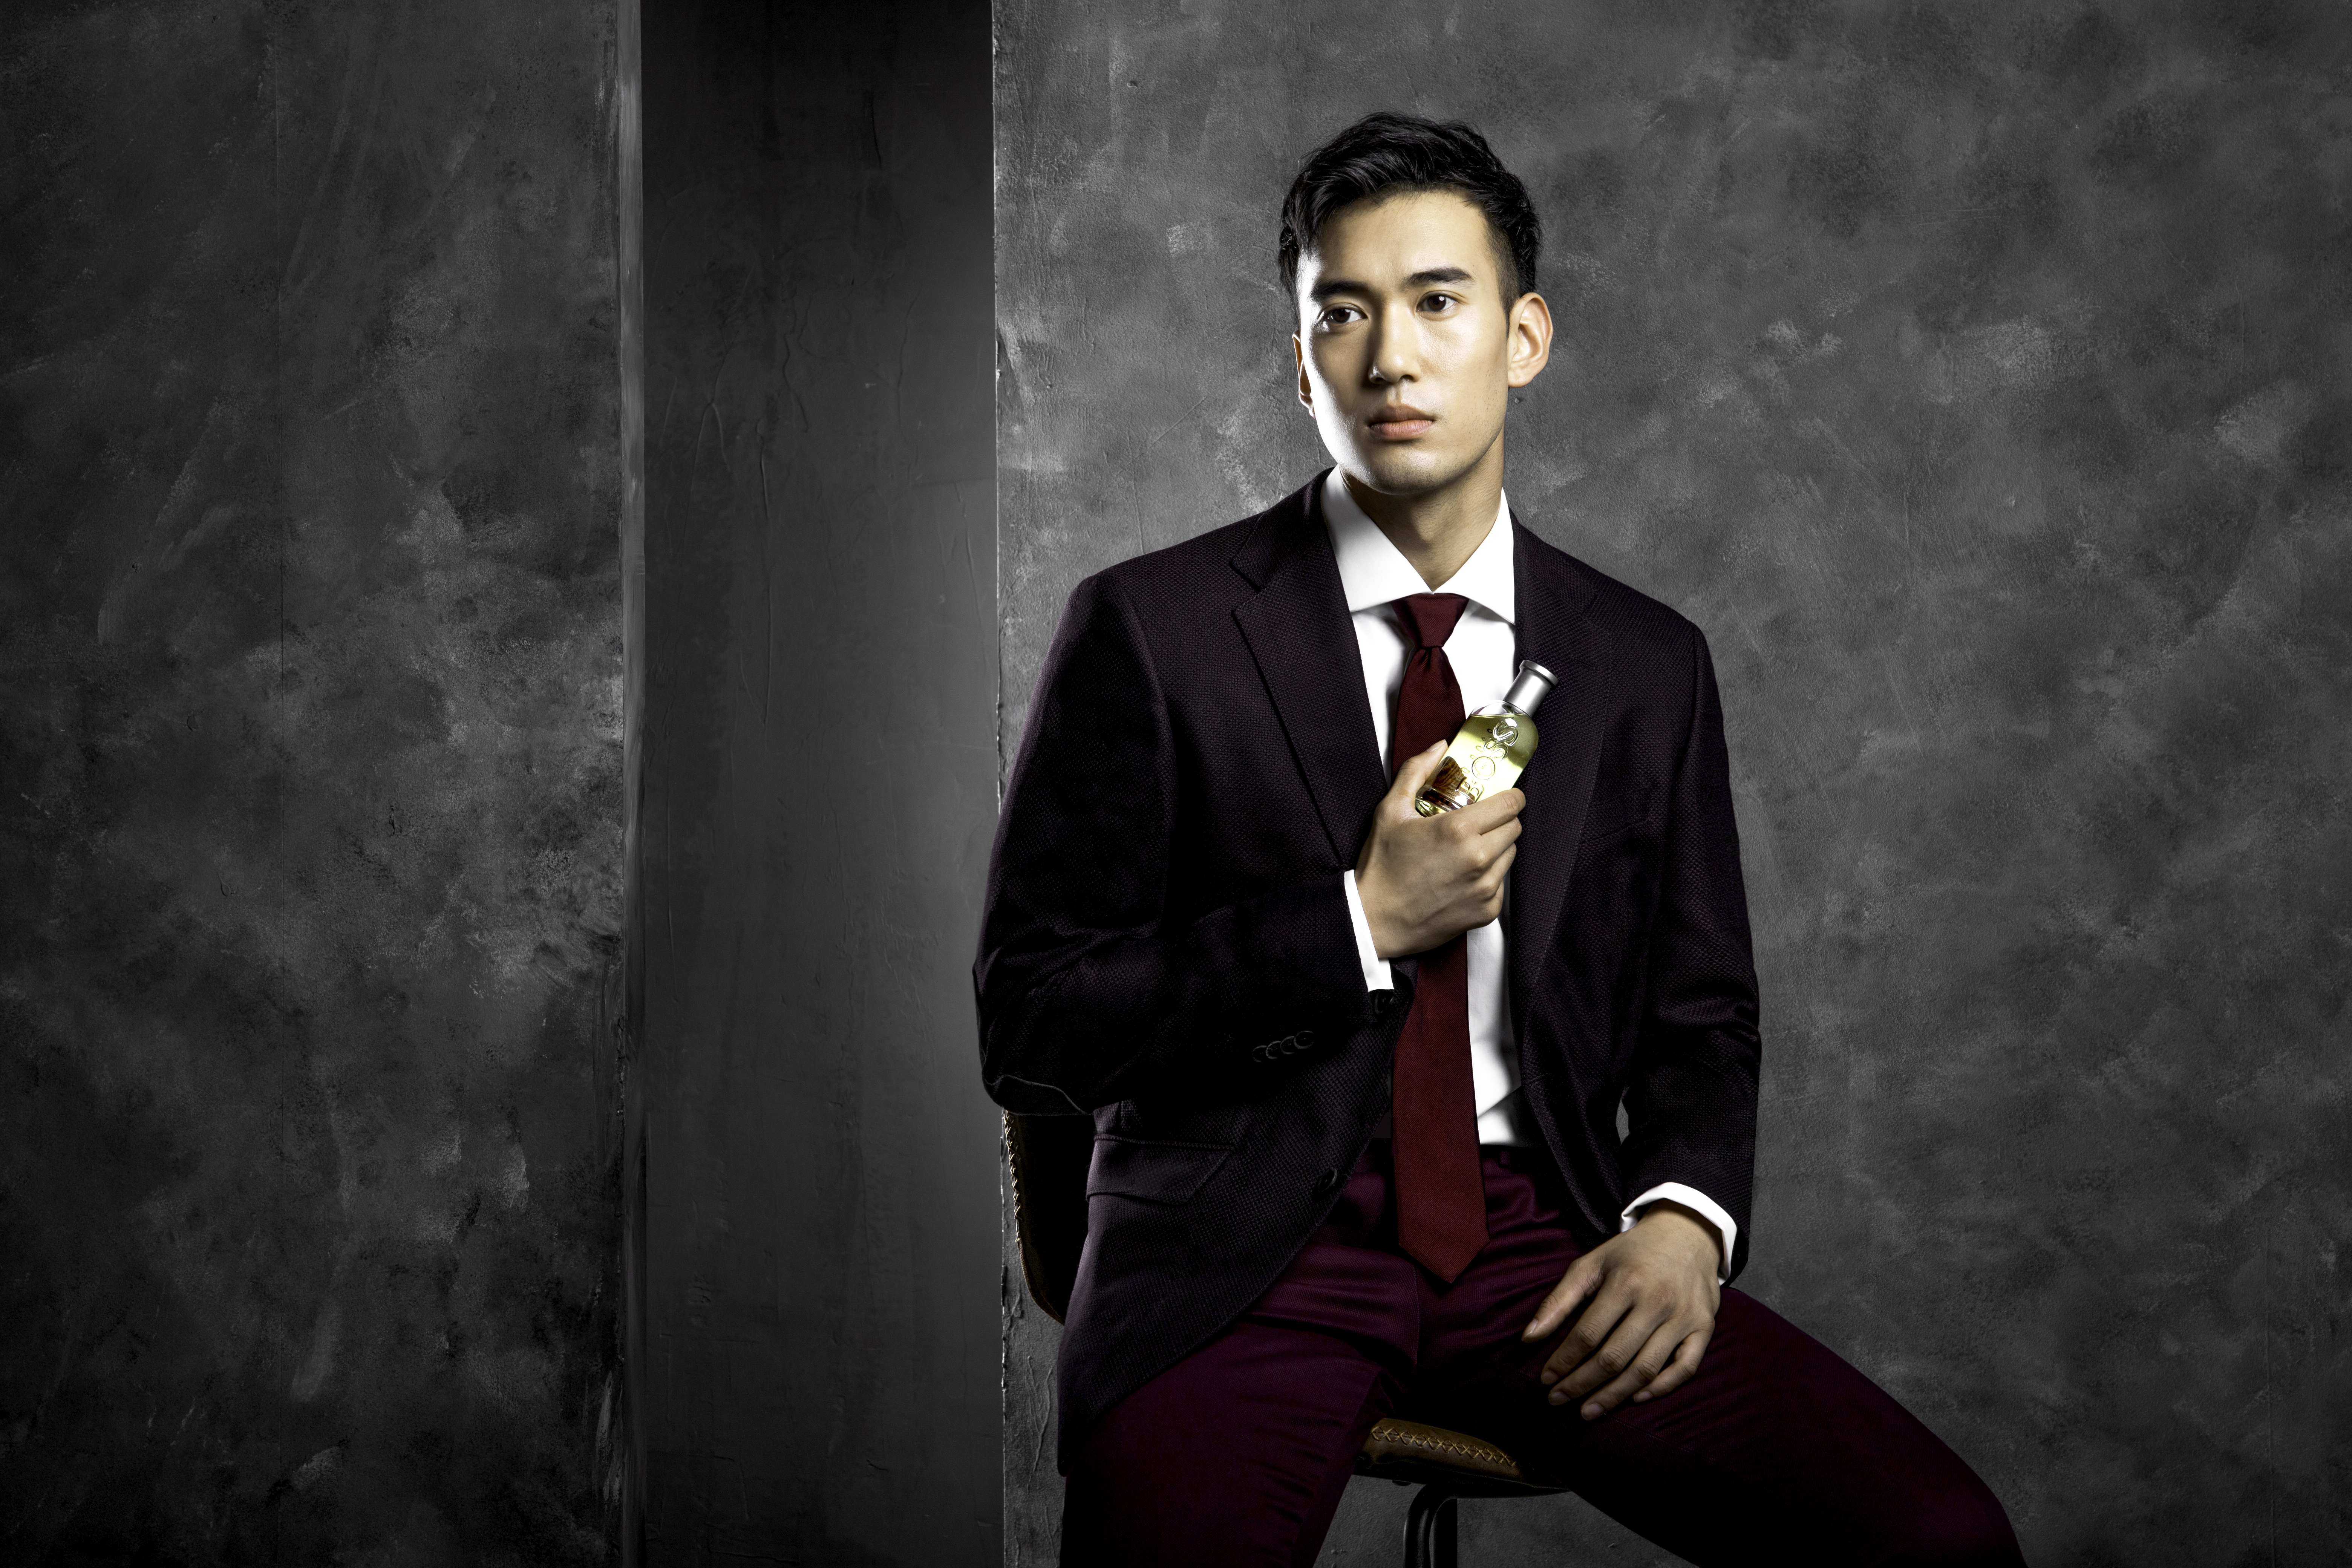 Local TV actor Alexander Yue shares about the many roles he plays as BOSS Bottled's Man of Today